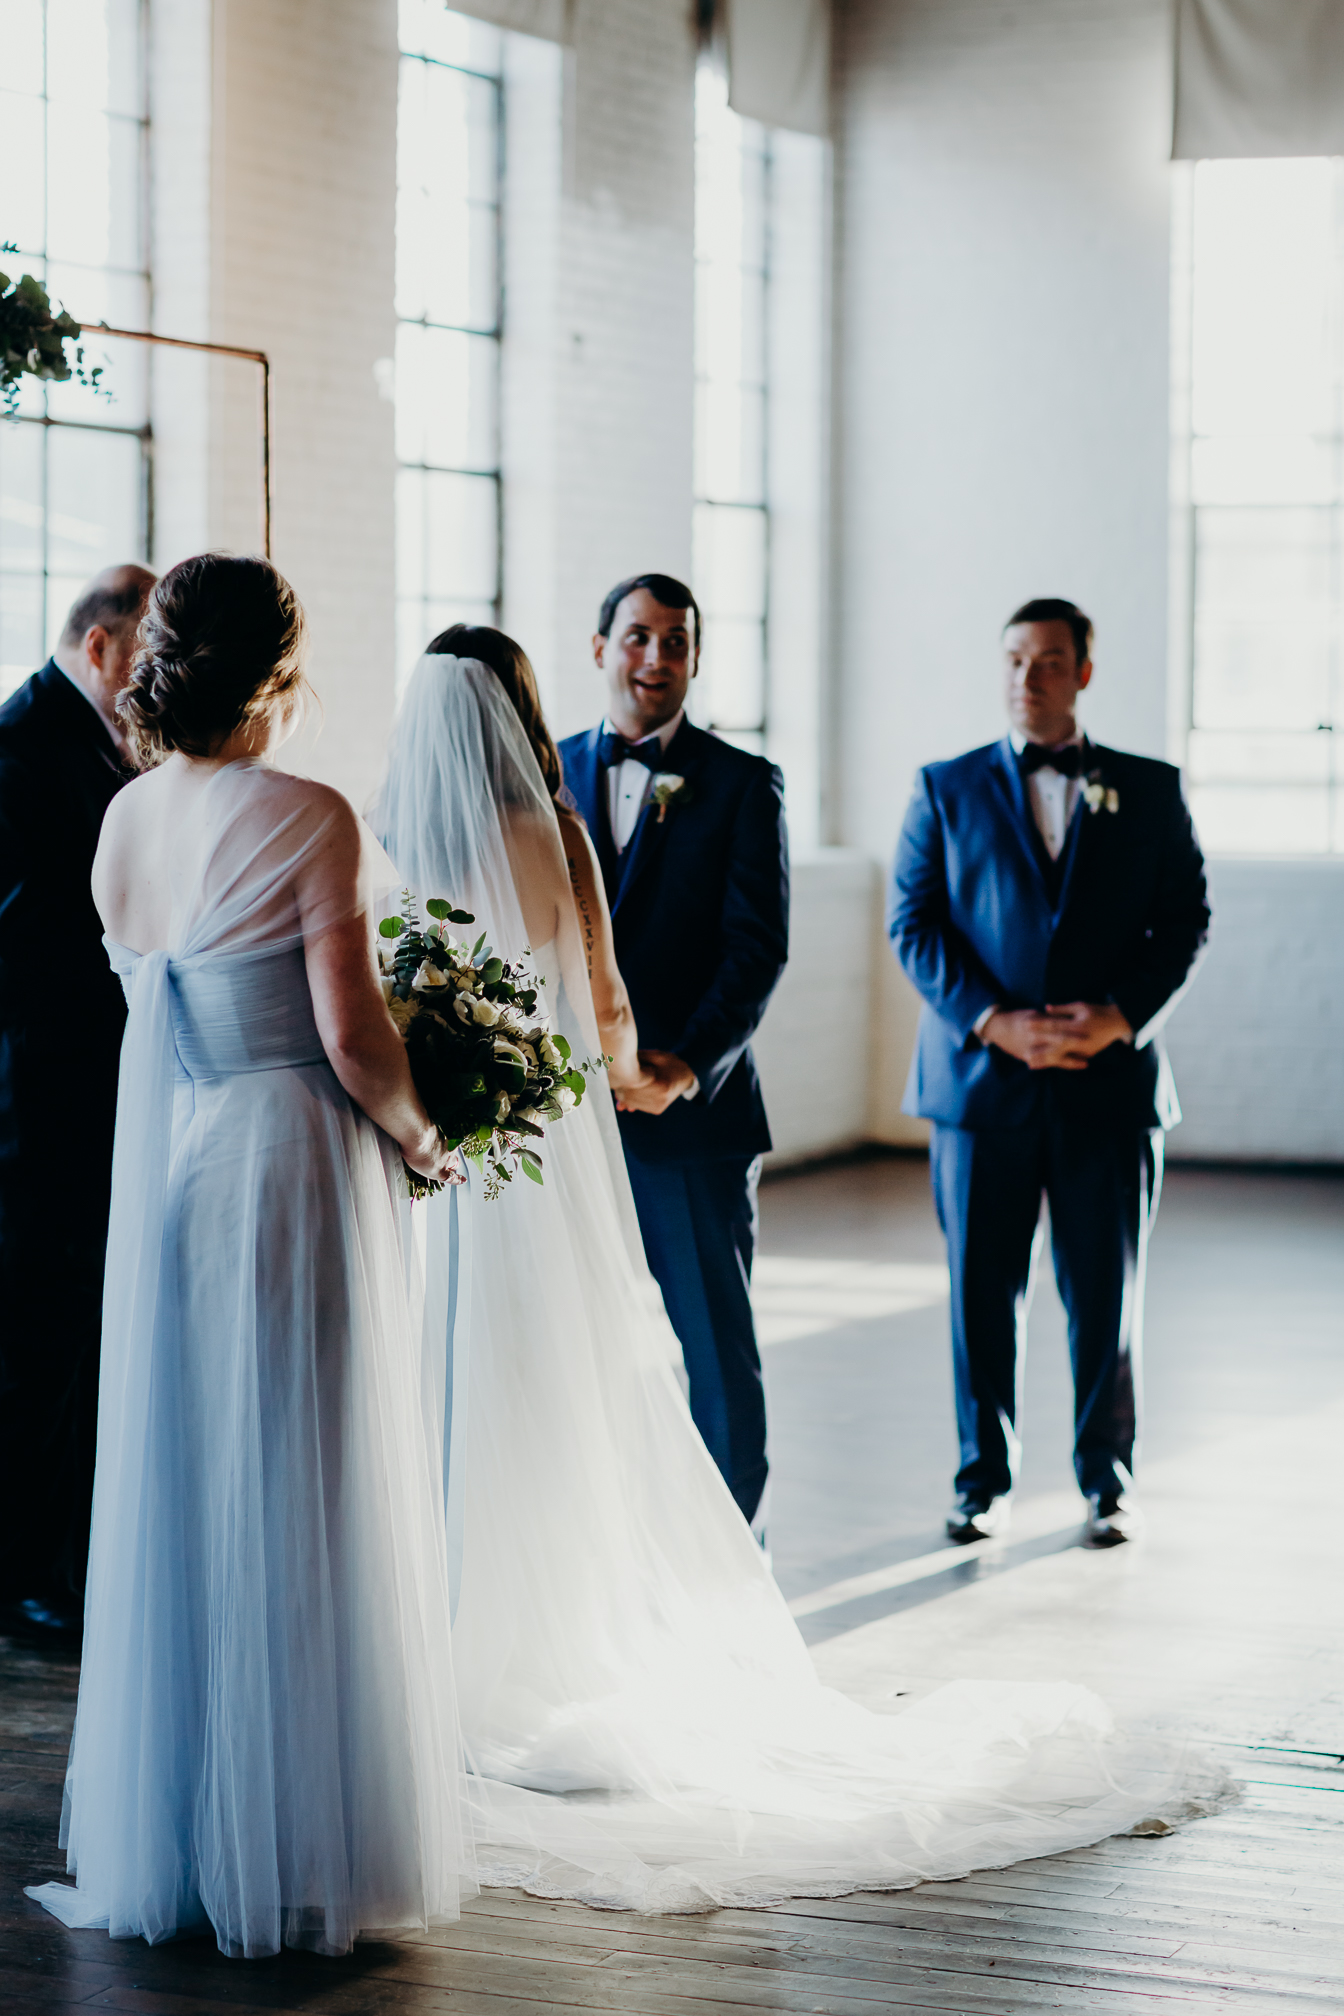 Gianna Keiko Atlanta NYC California Wedding Elopement Photographer_Sneak Peek-21.jpg